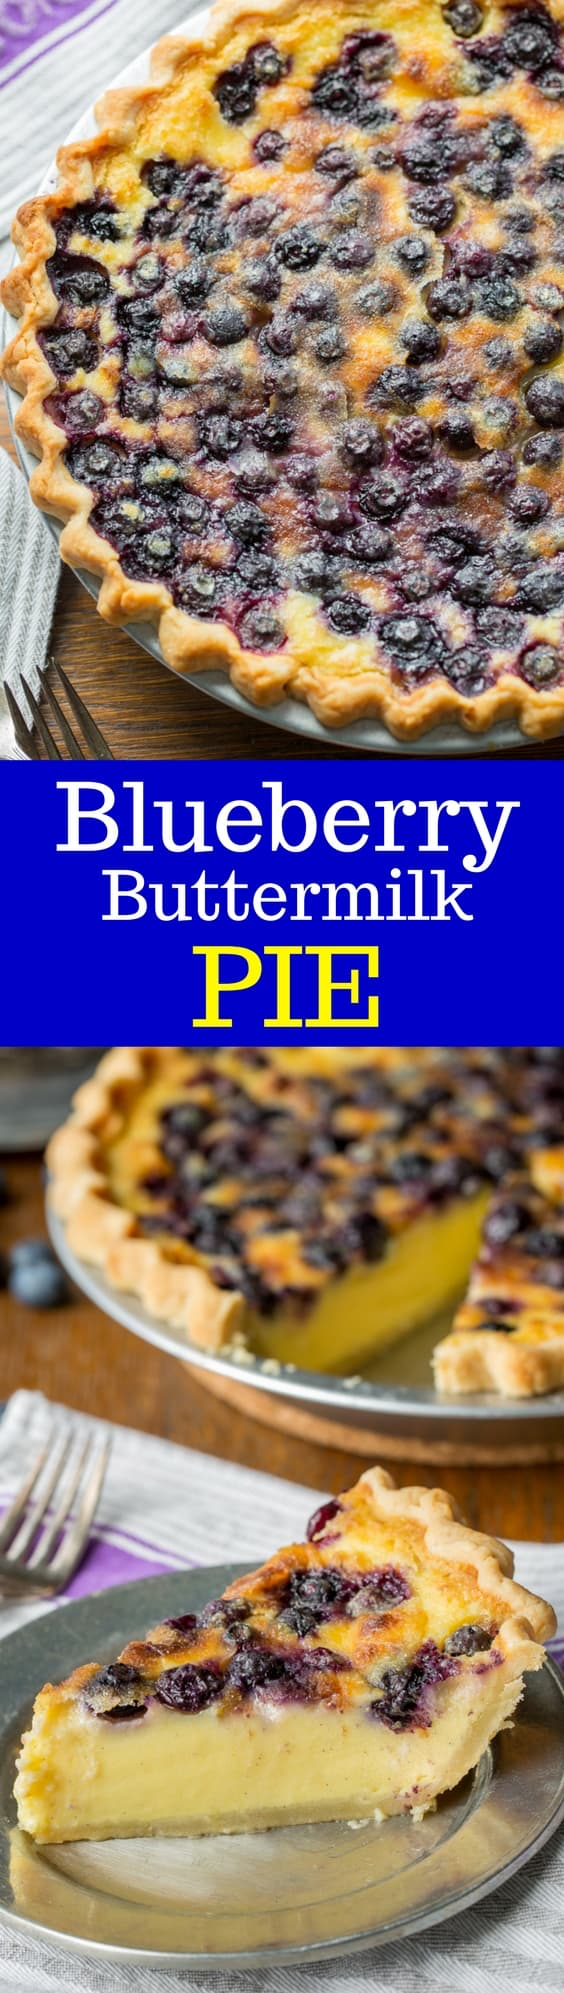 Blueberry Buttermilk Pie a creamy, tangy, sweet and delicious pie that will delight your guests!